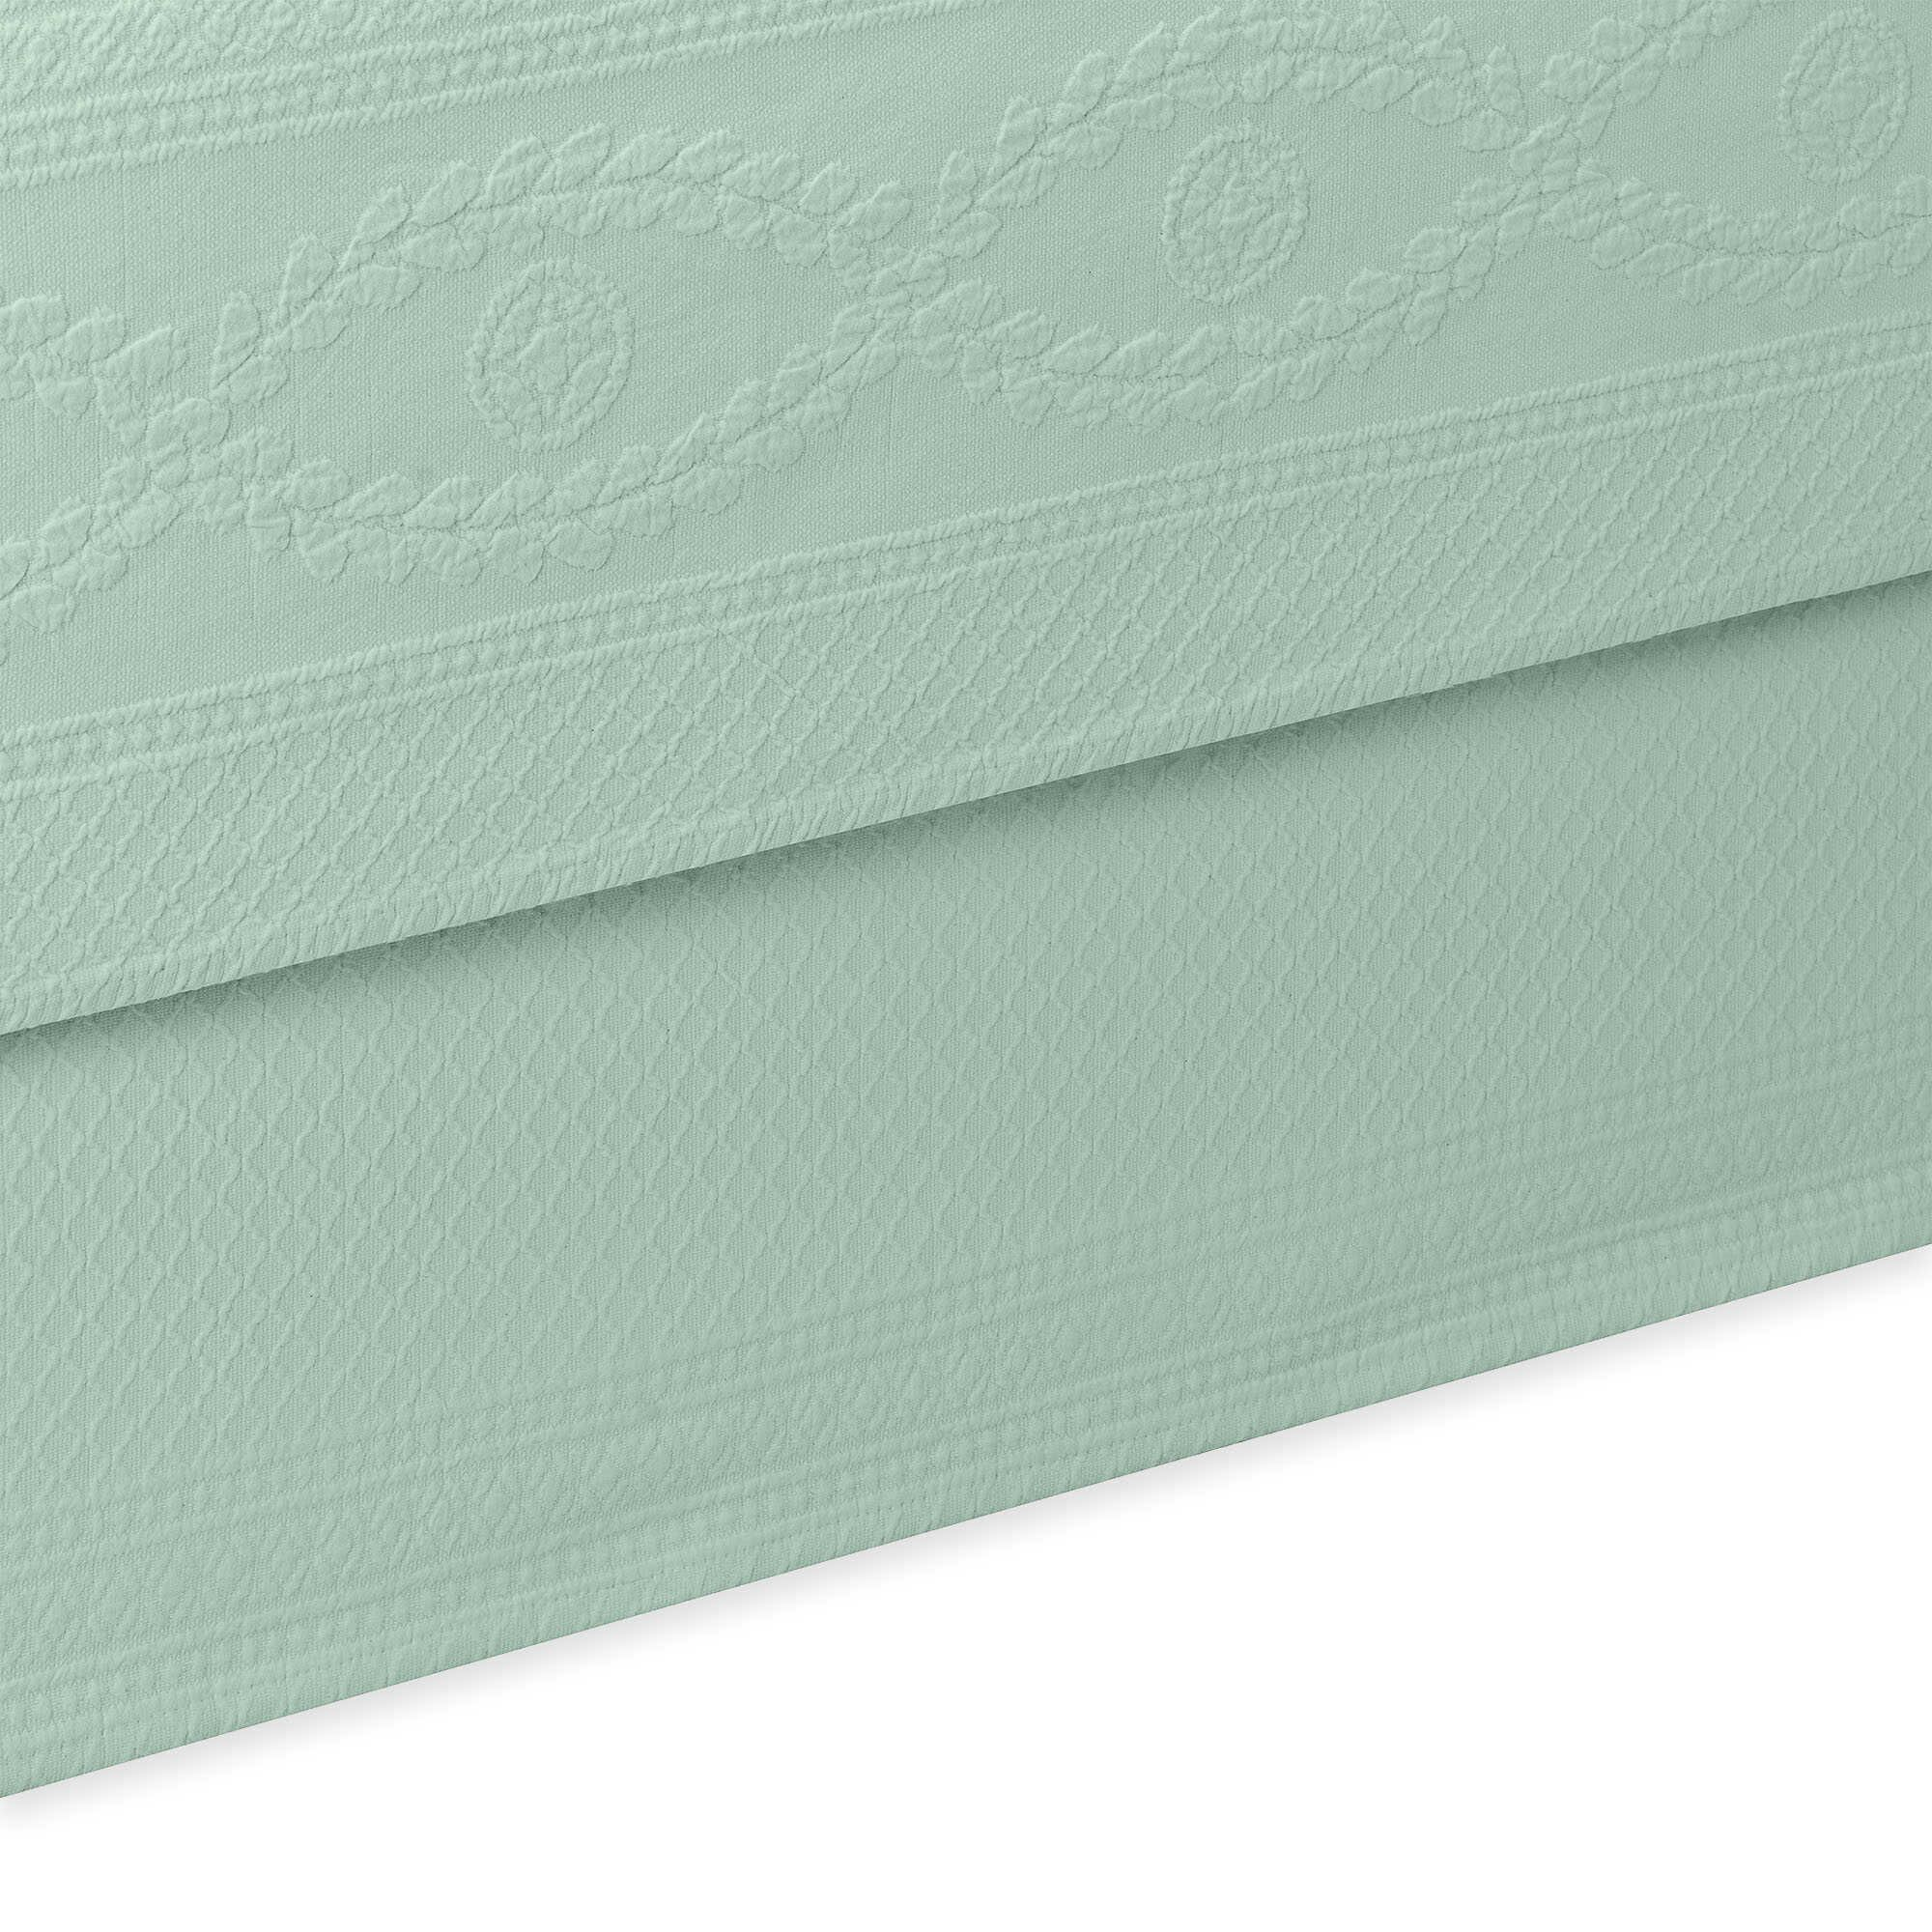 Williamsburg Abby Bed Skirt Color: Sage, Size: Full/Double